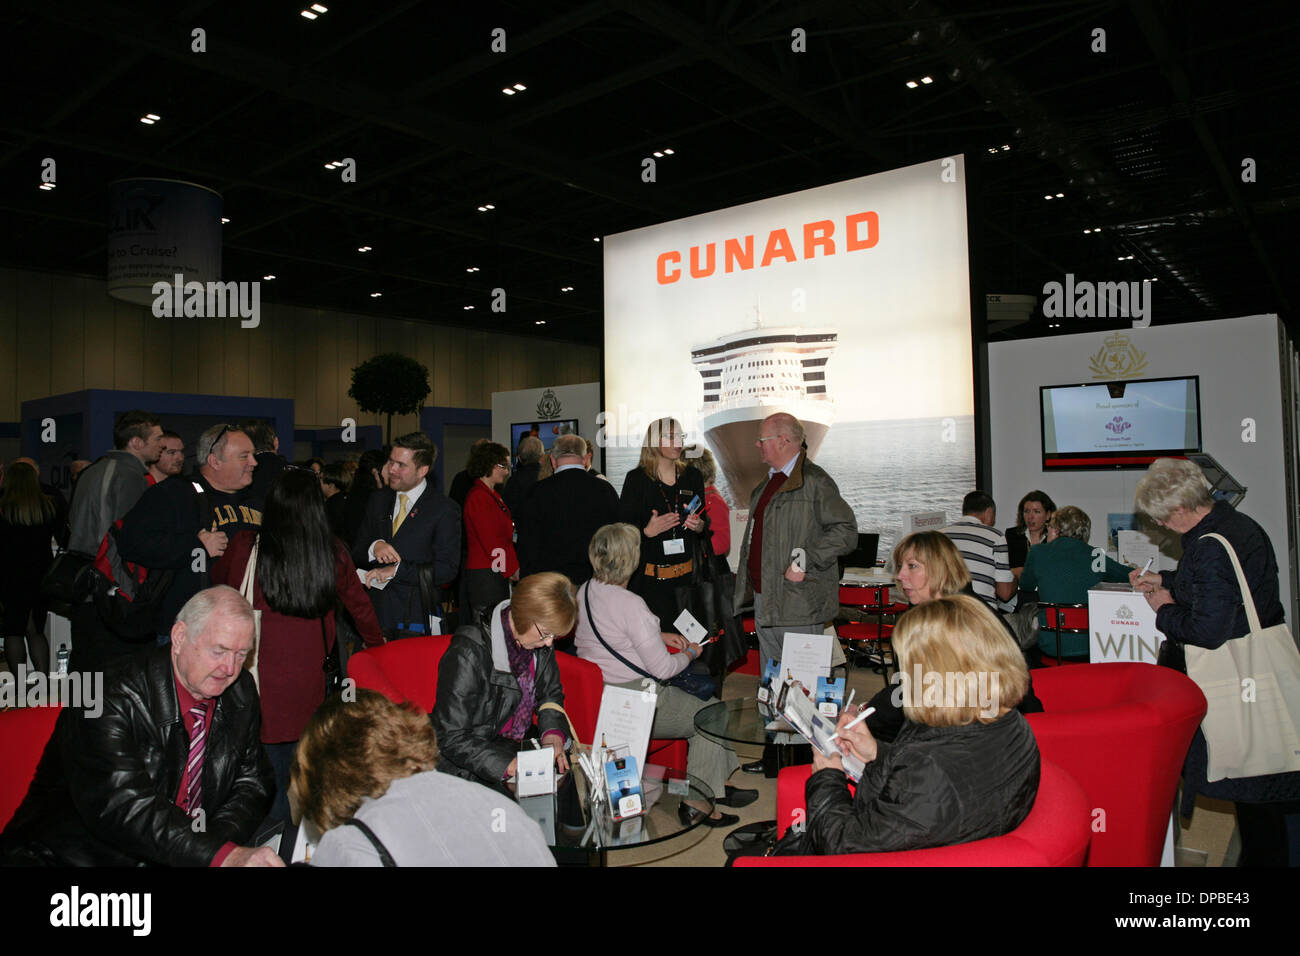 London, UK. 11th January 2014. Cunards stand at the London Cruise Show 2014 in Excel. Credit:  Keith Larby/Alamy Live News - Stock Image